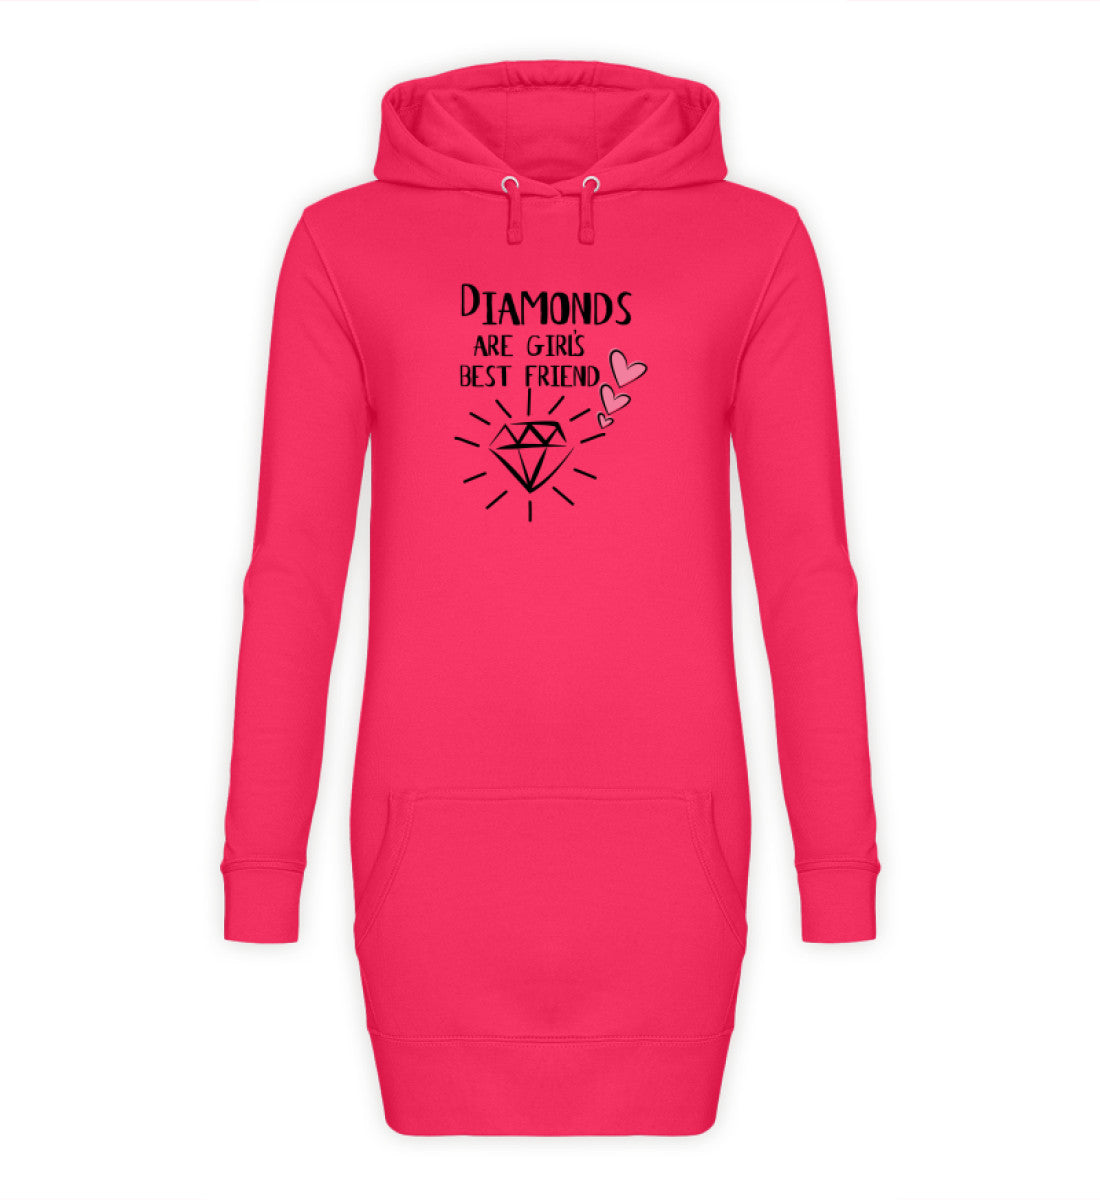 PM FASHION WOMEN® Diamonds  - Damen Hoodie-Kleid - PM FASHION®